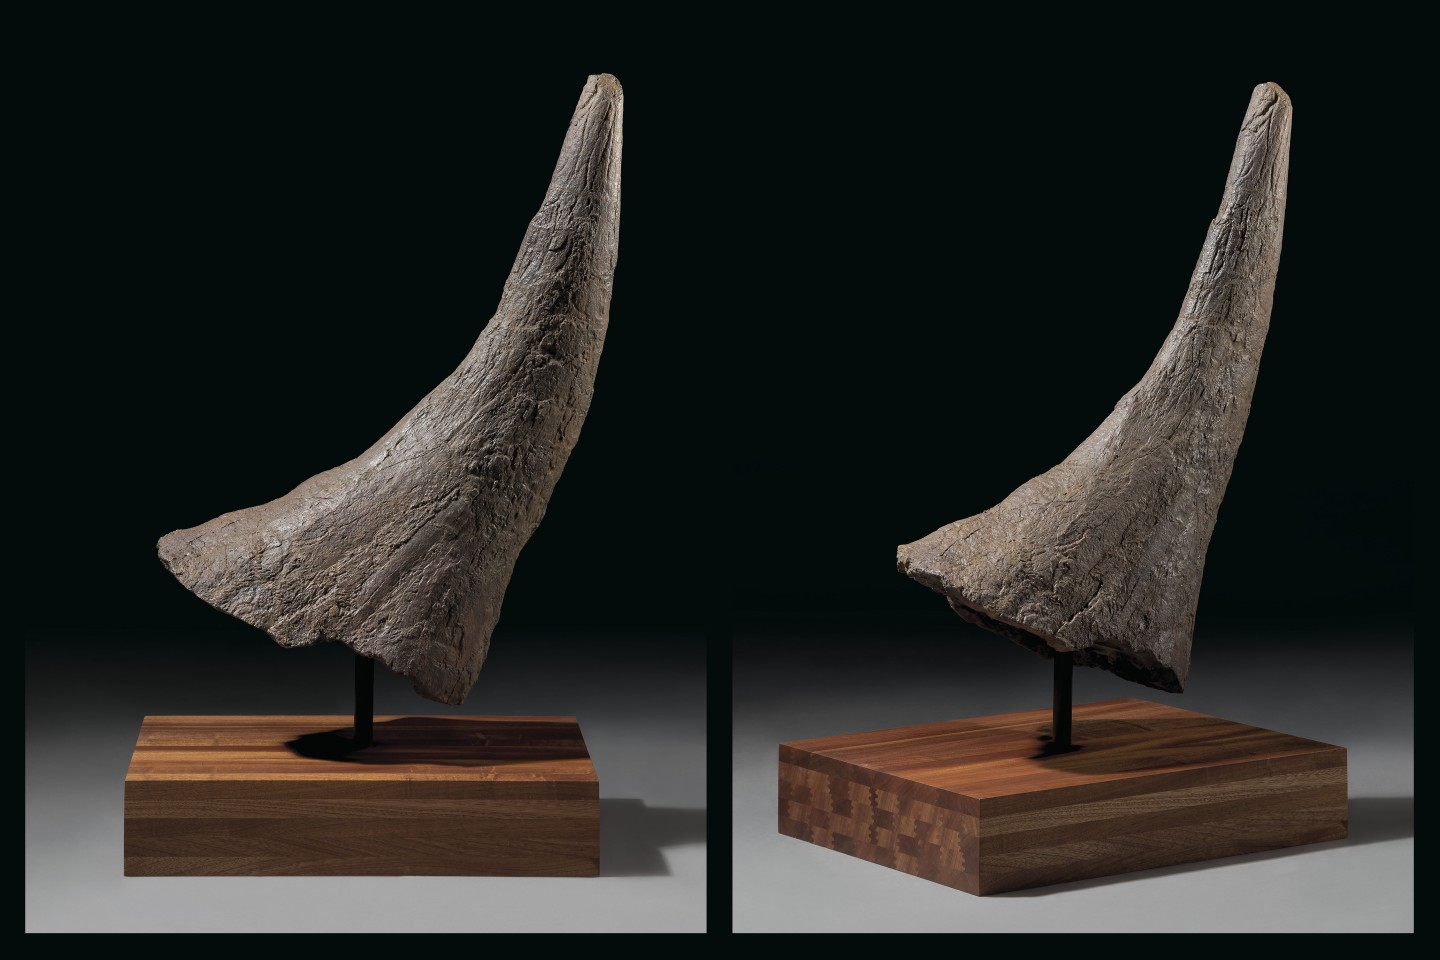 The brow horn from one of nature's most distinctive dinosaurs, this Triceratops remnant dates from the late Cretaceous (67-66 million years ago) period and is 33 inches (84cm) tall on its stand.